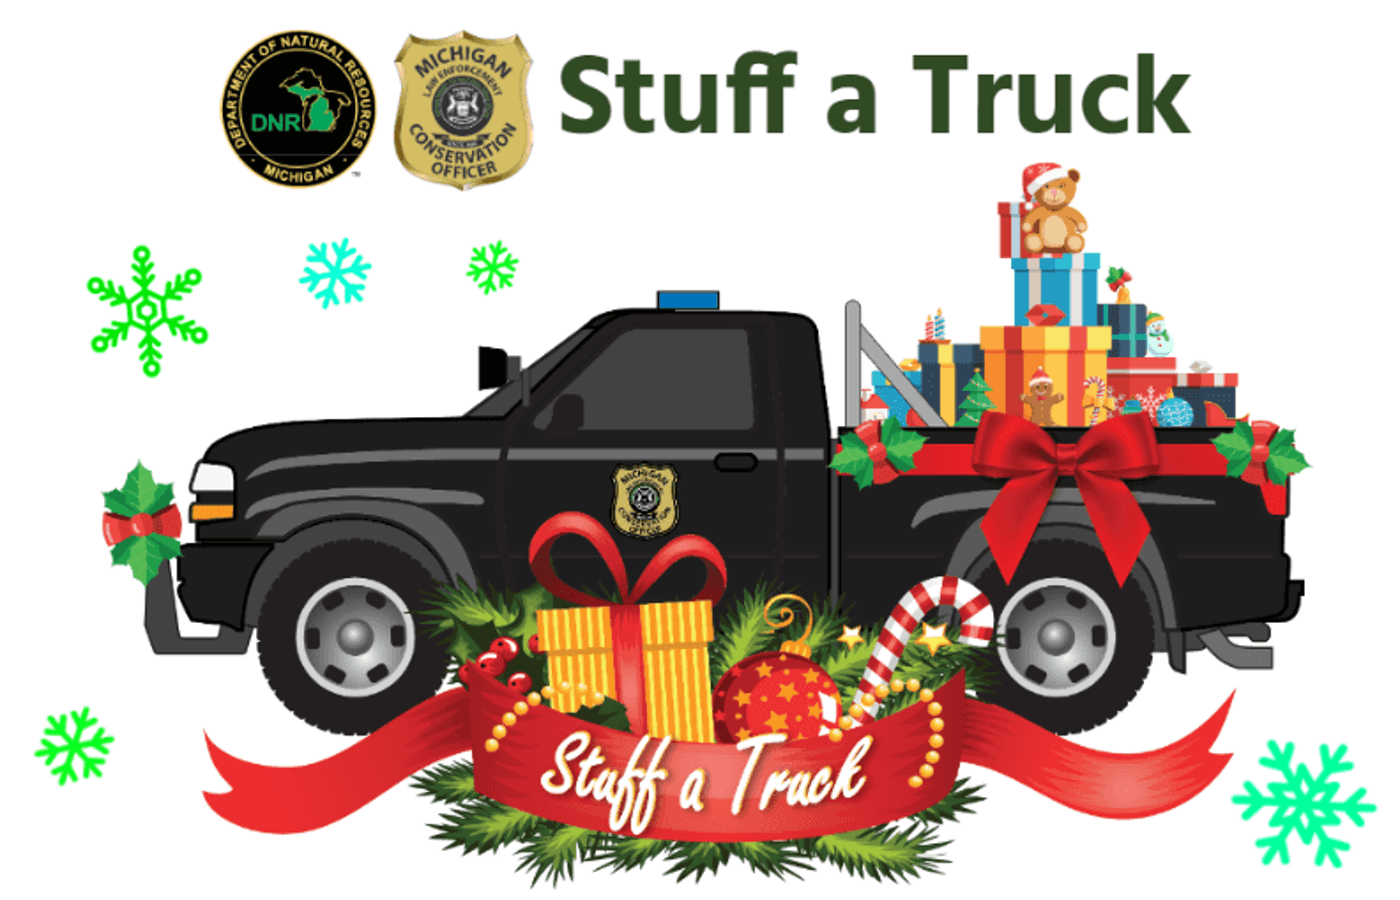 """The Michigan Department of Natural Resources is accepting donations to its annual """"Stuff a Truck"""" toy drive."""